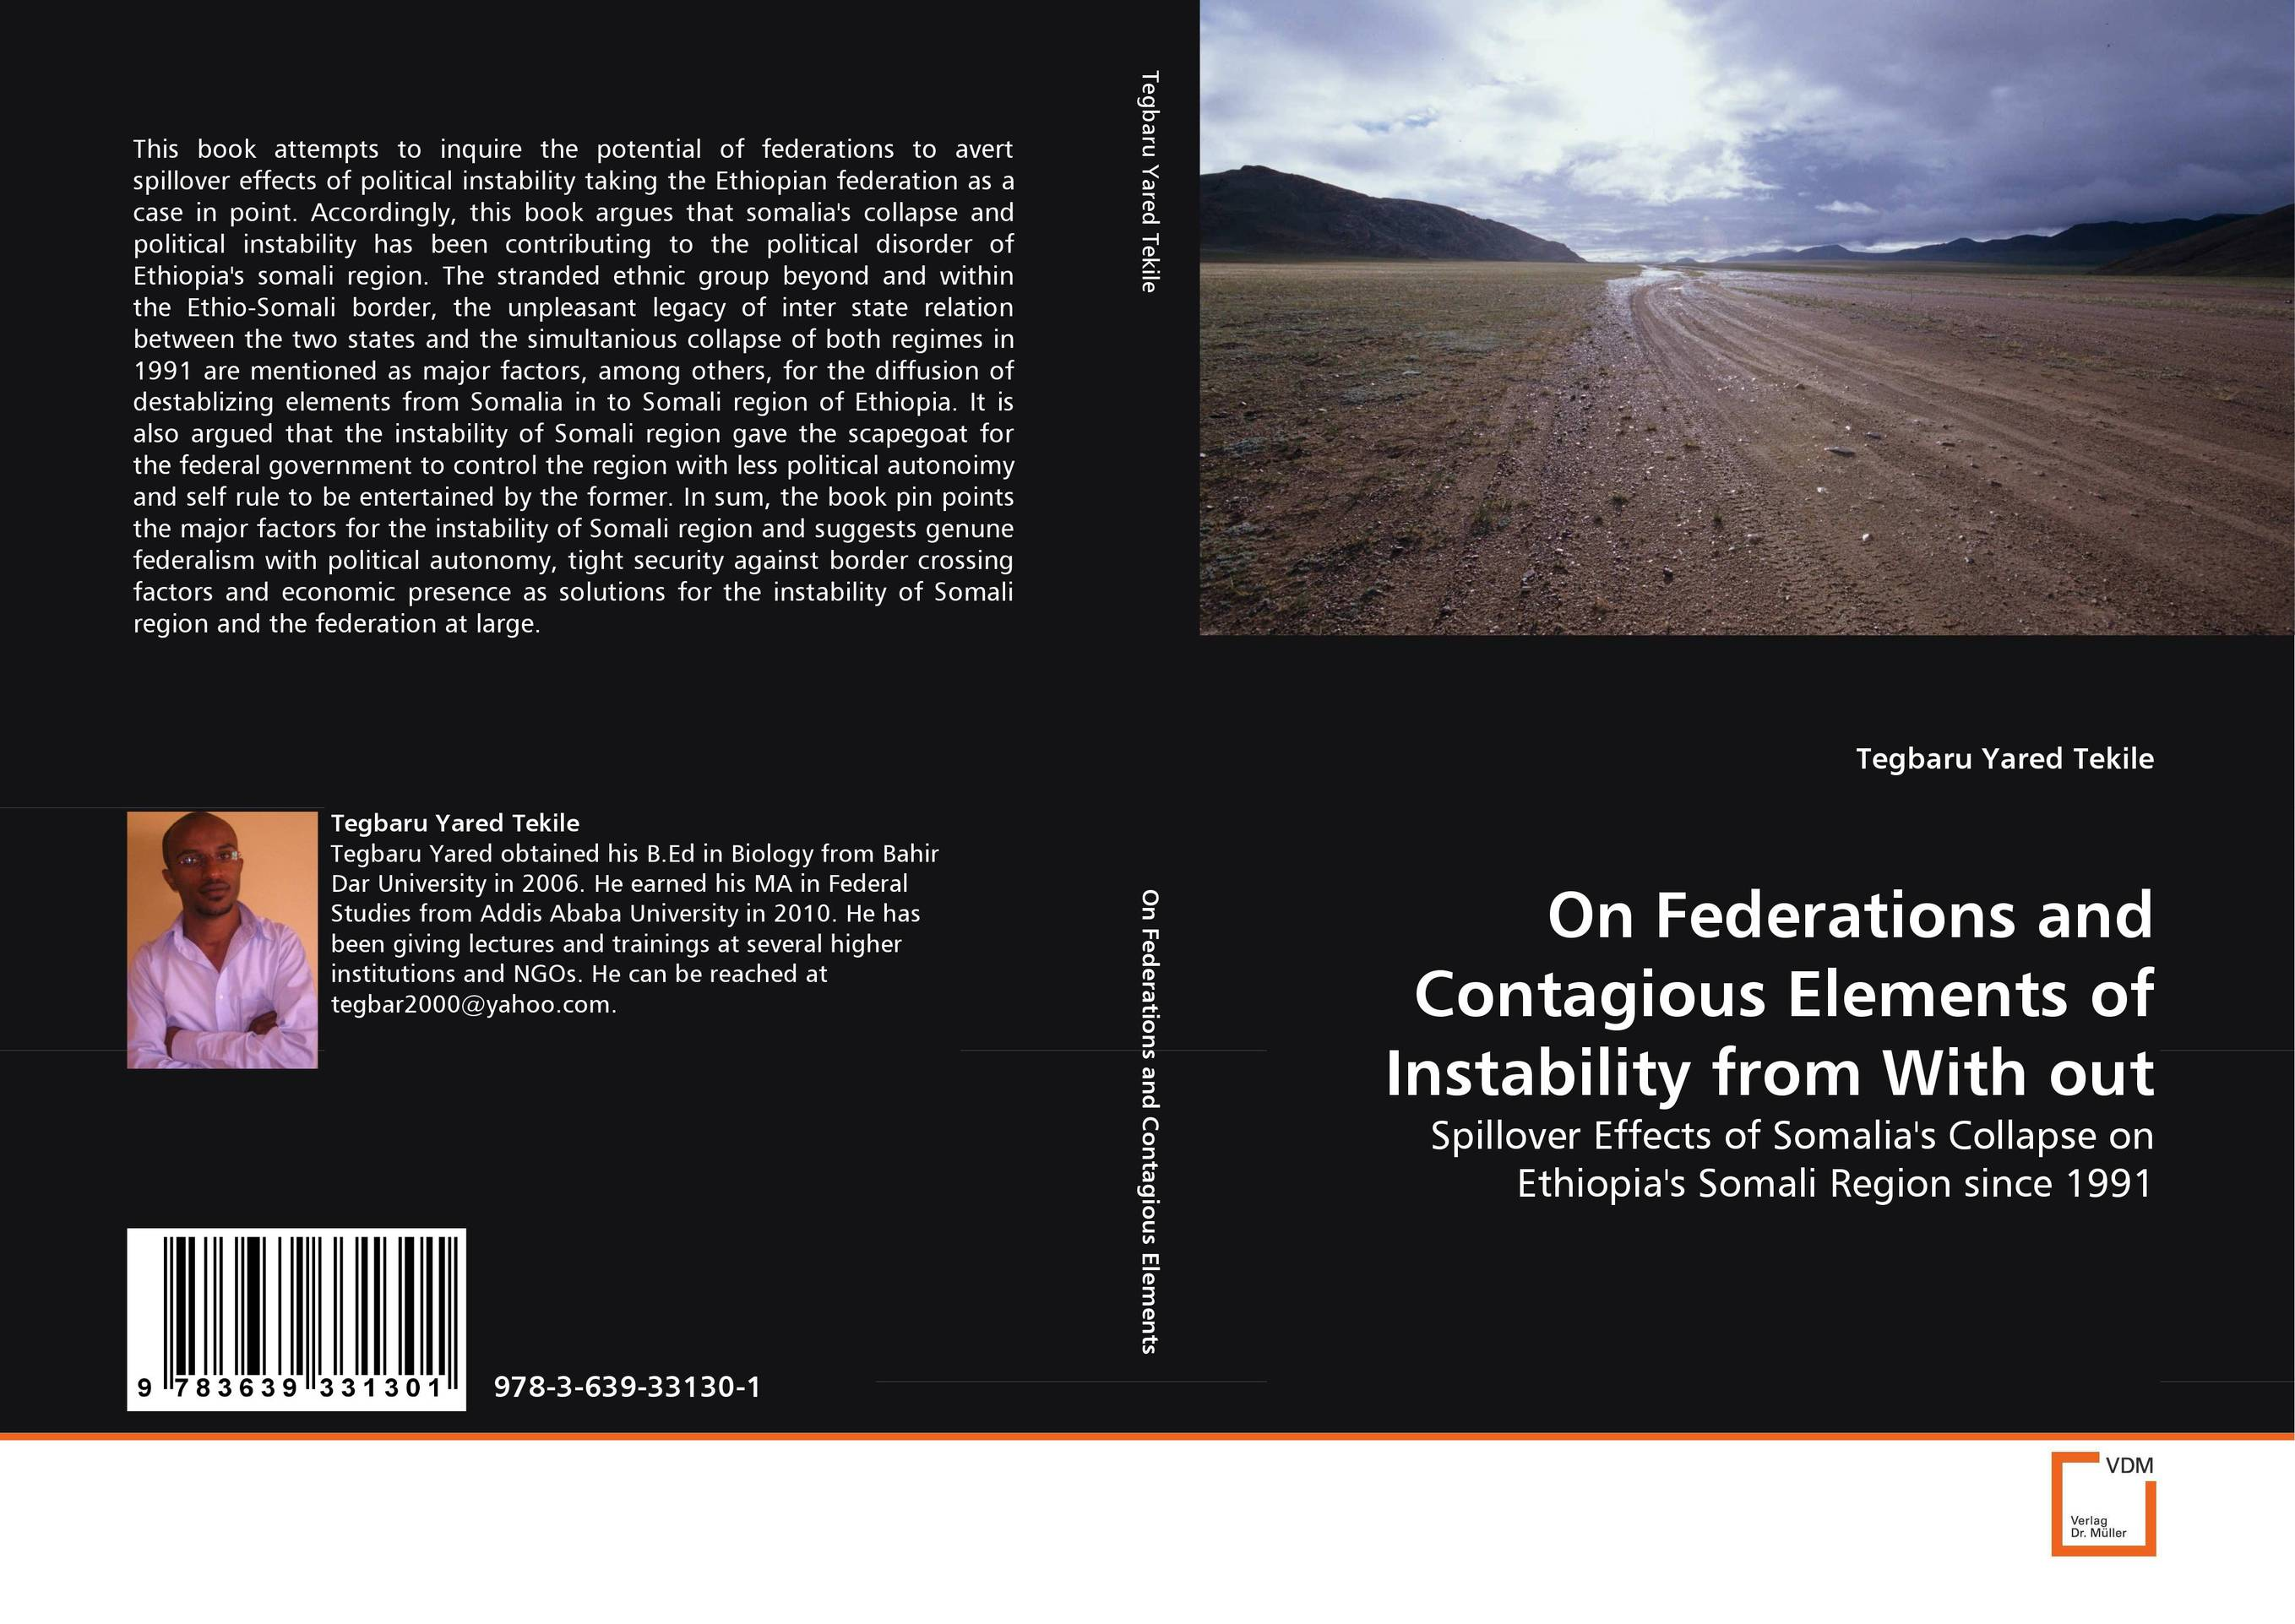 On Federations and Contagious Elements of Instability from With out the chesapeake book of the dead – tombstones epitaphs histories reflections and oddments of the region